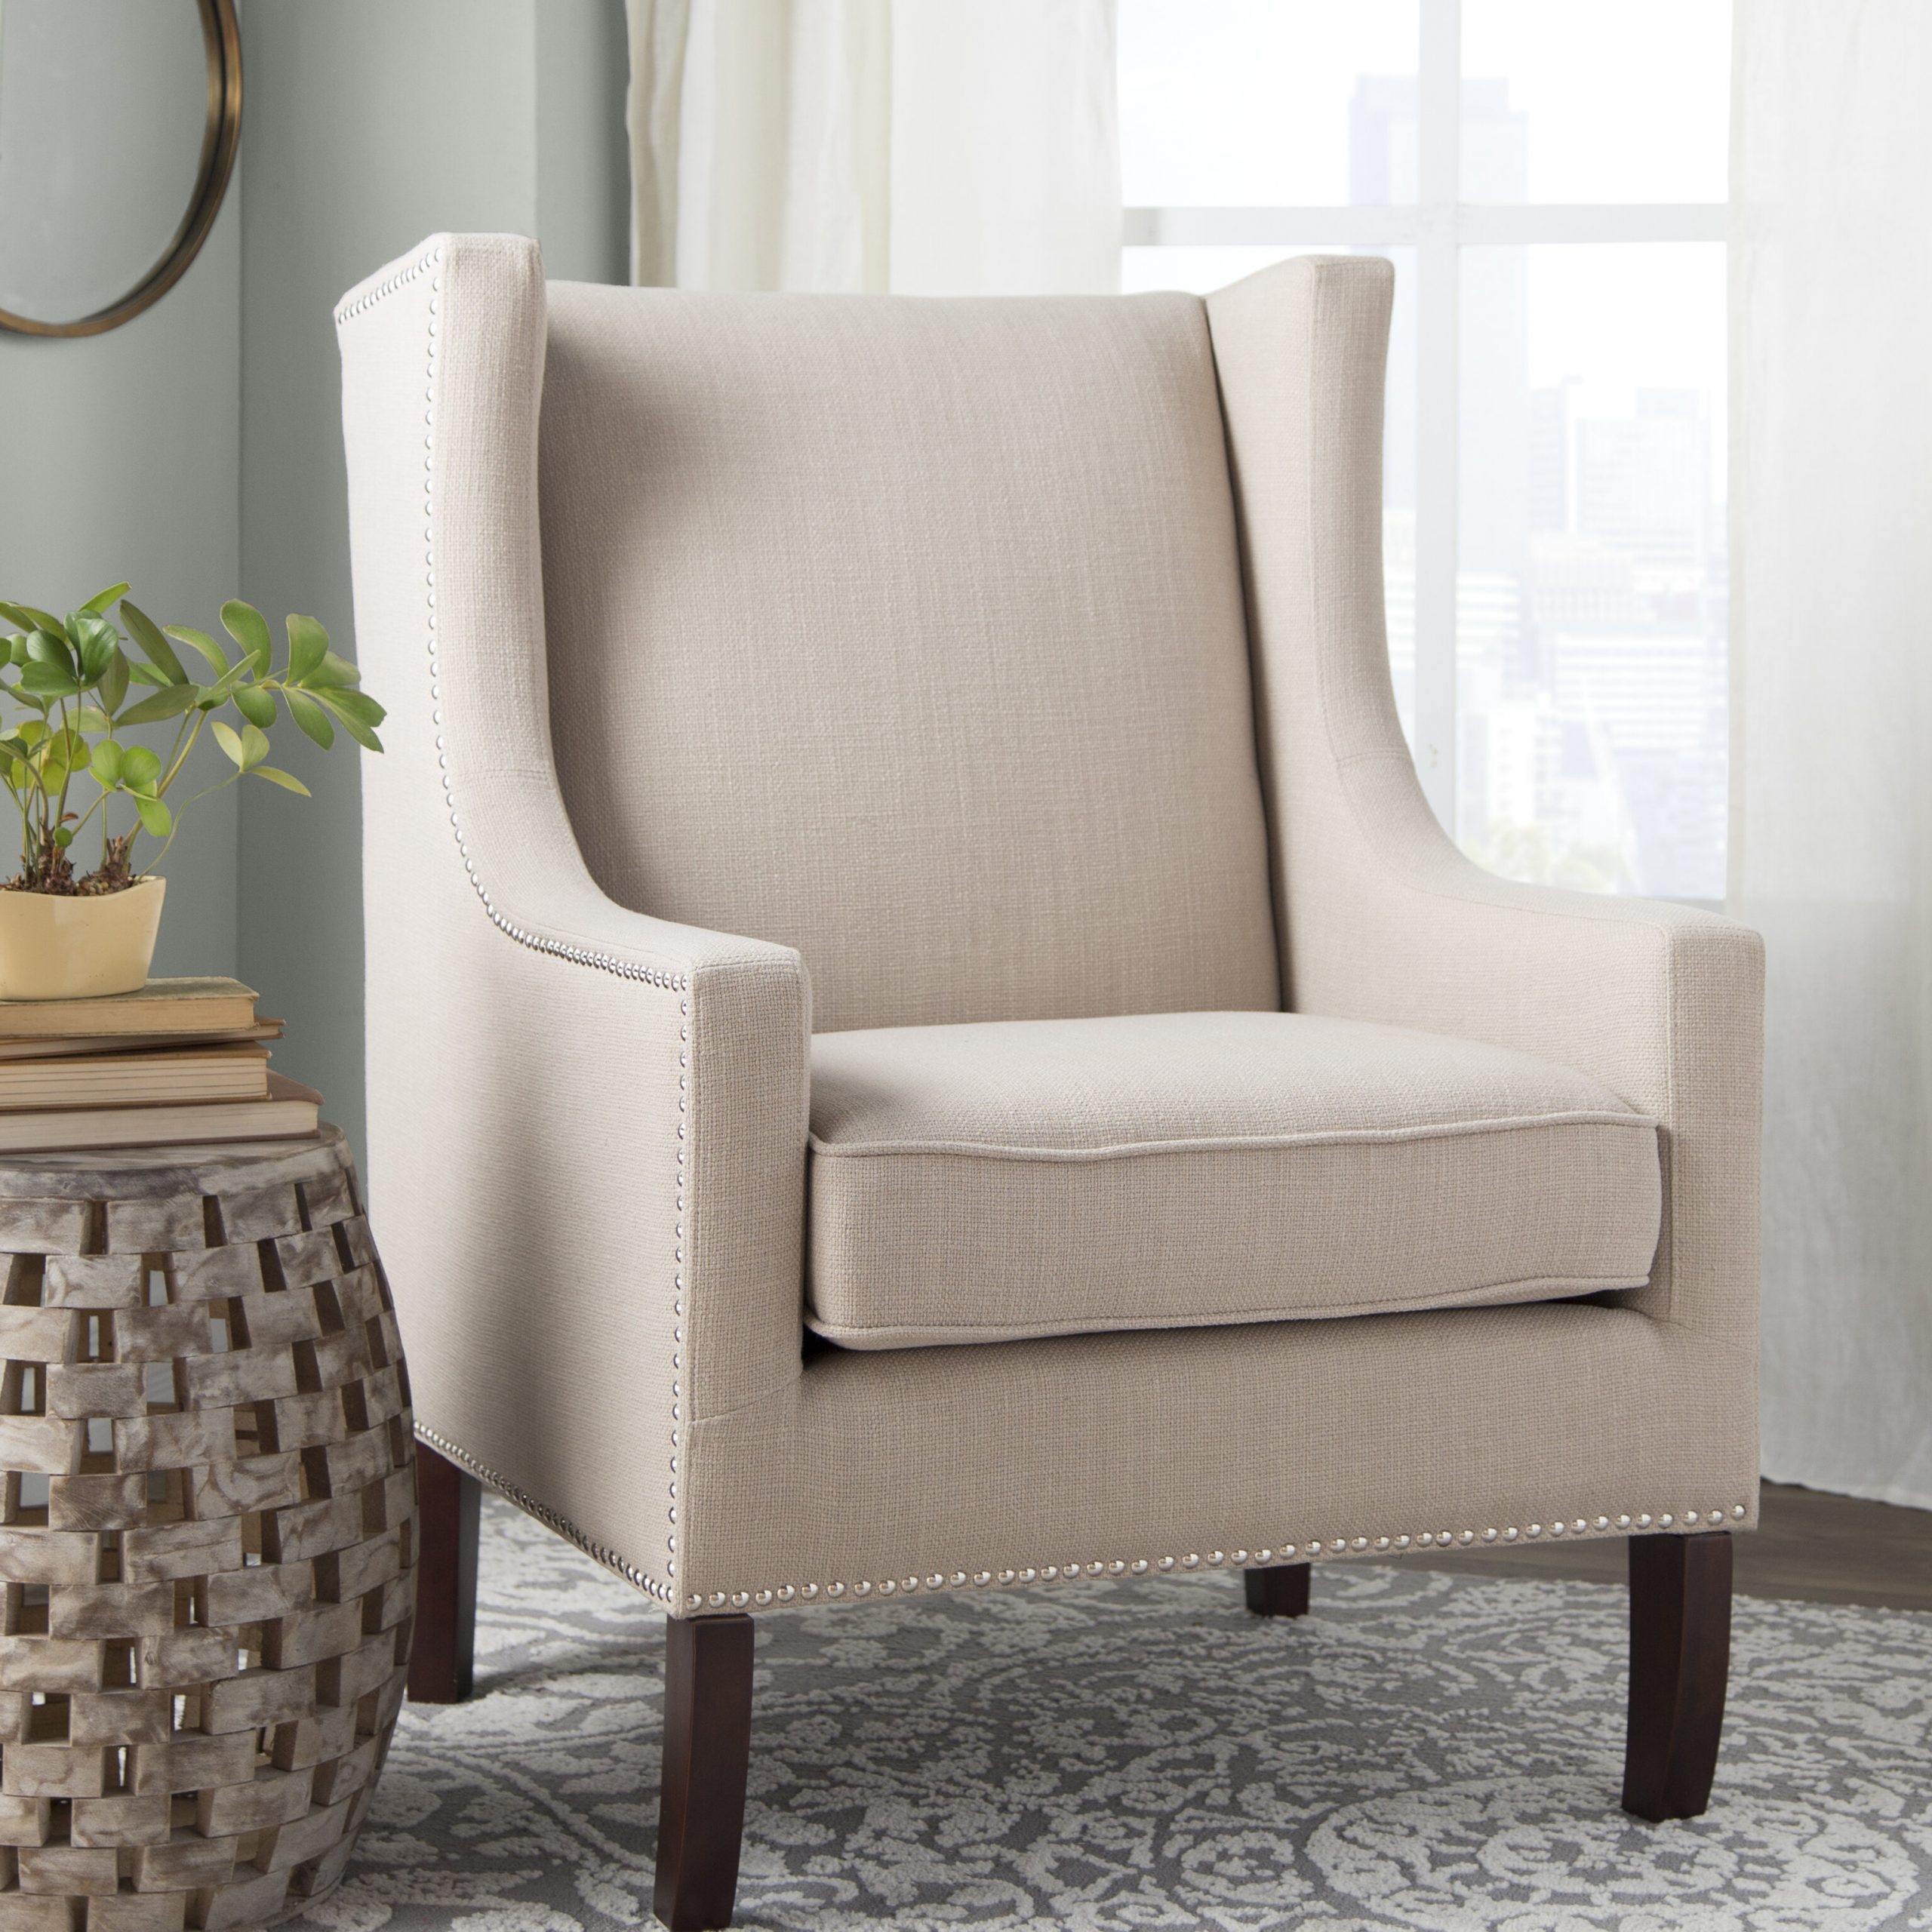 Wayfair Intended For Nestor Wingback Chairs (View 10 of 20)